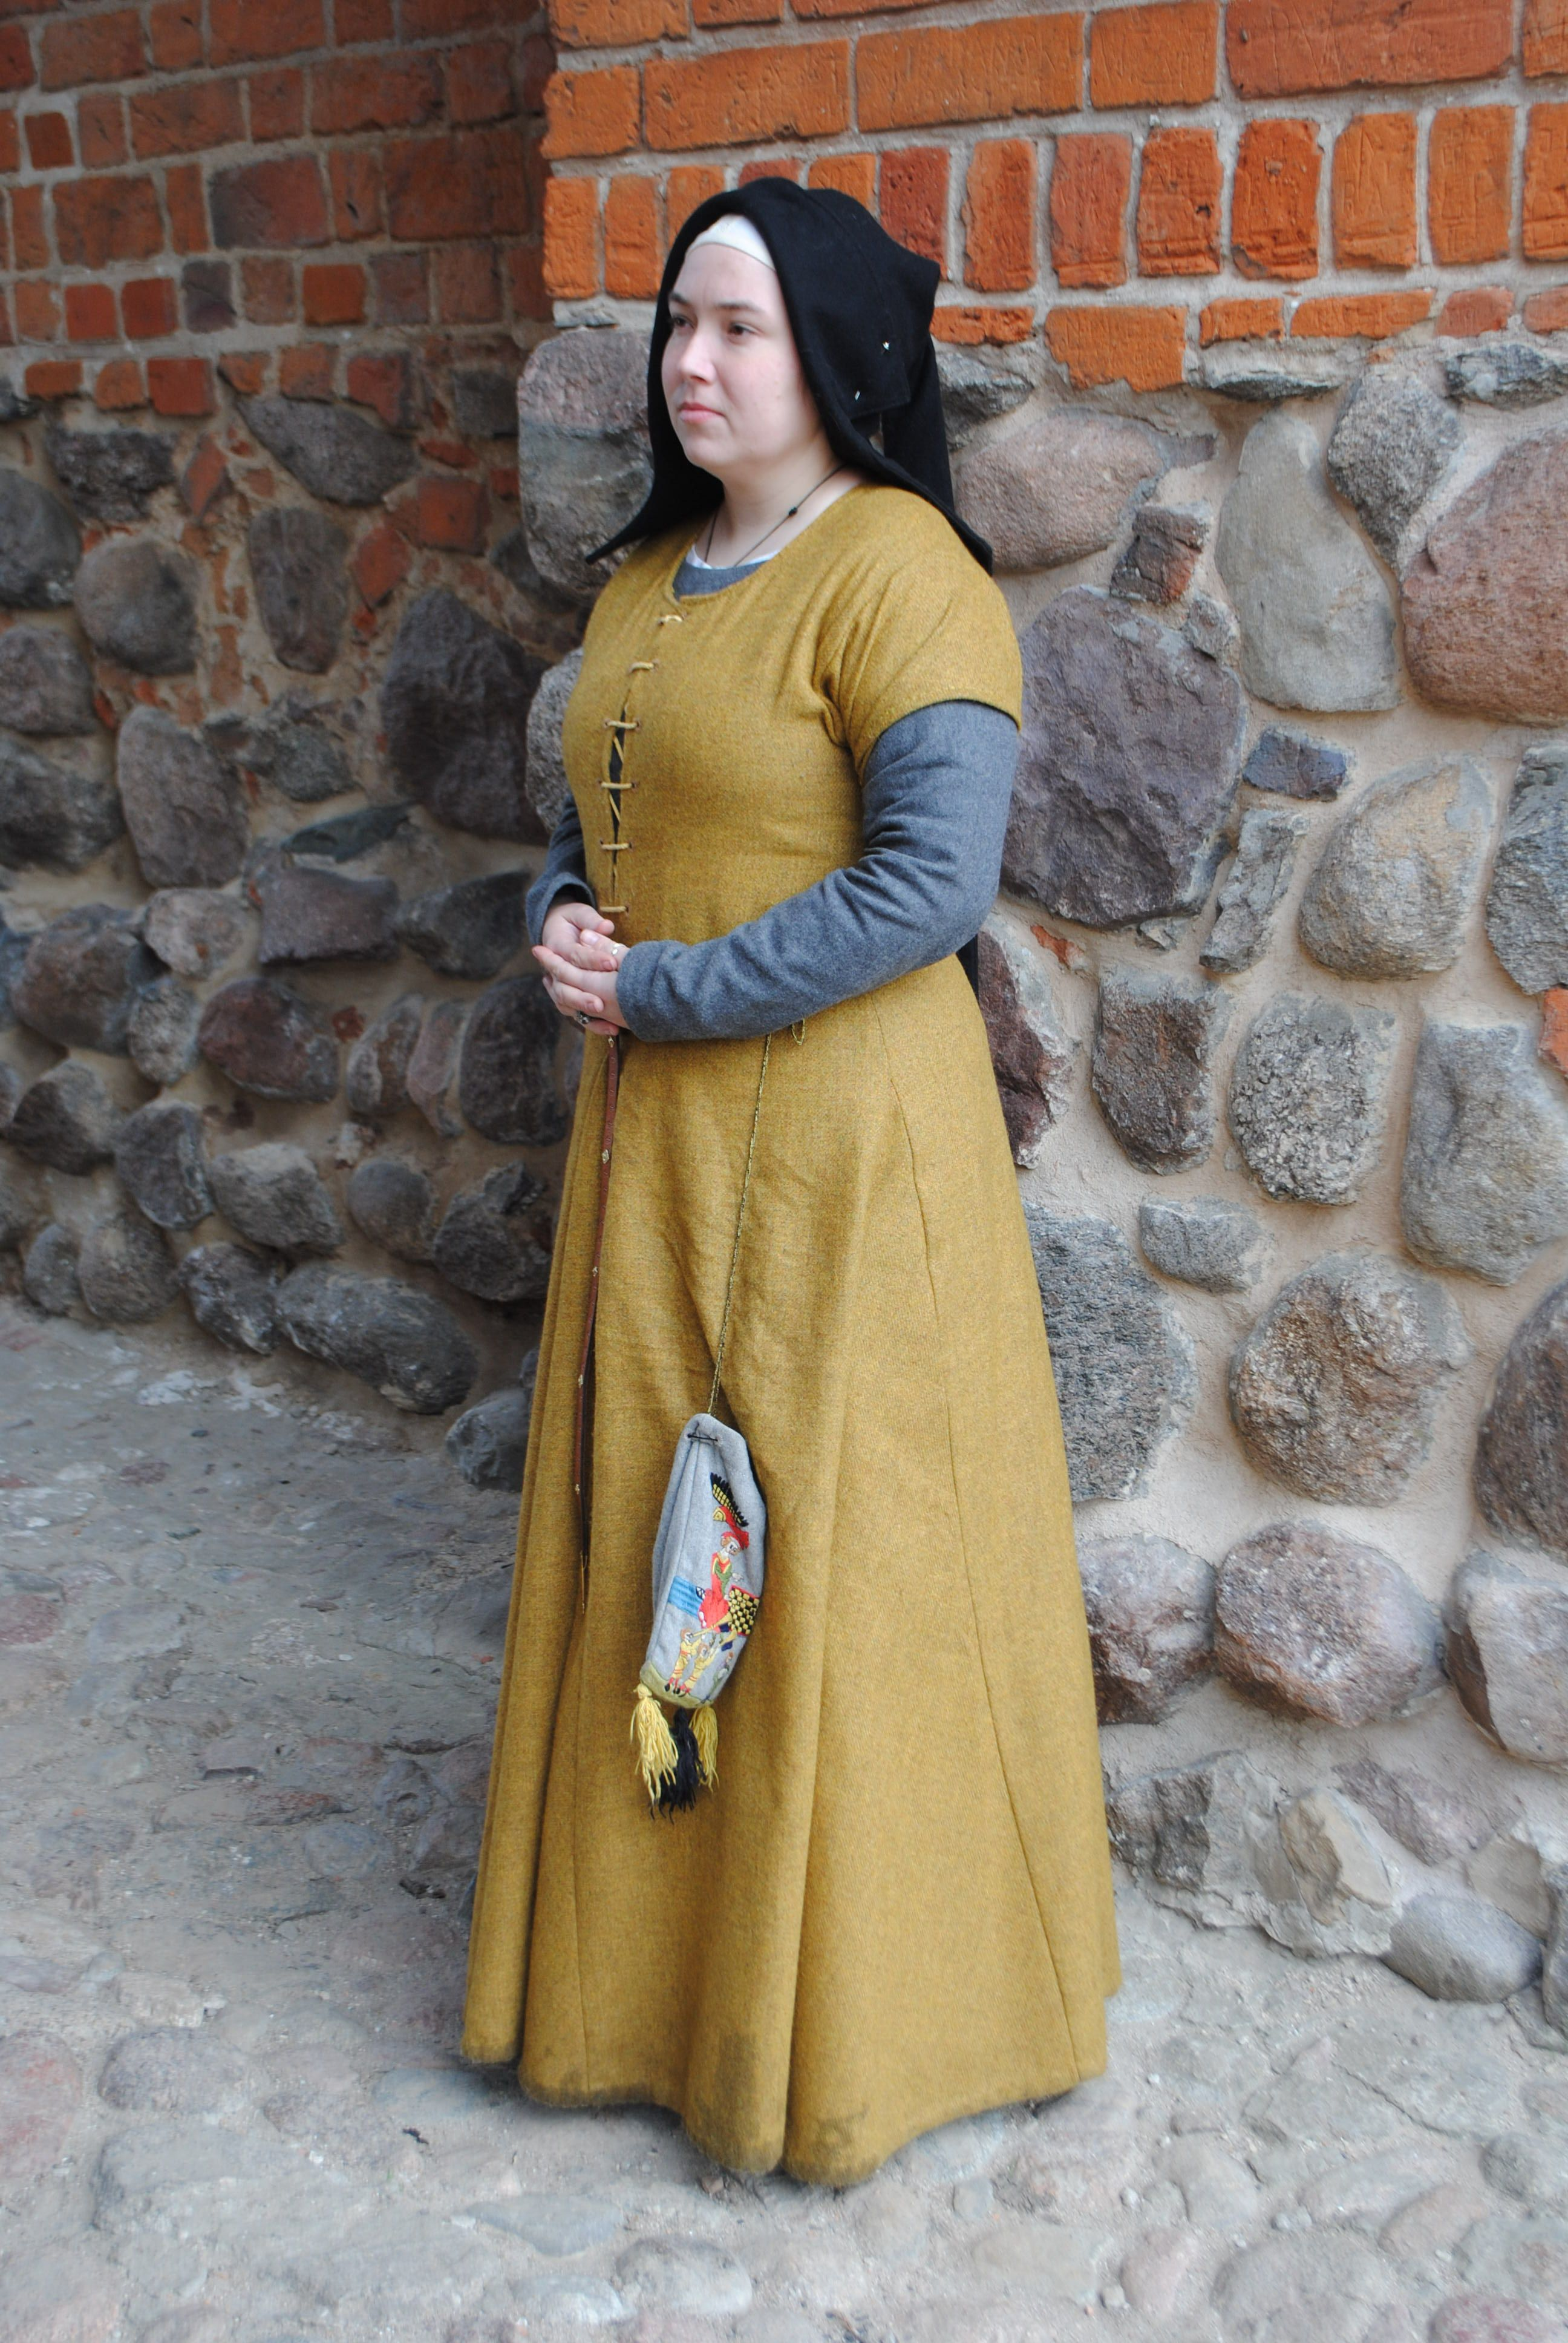 be208eee46 Medieval outfit based on Flemish illuminations from the 1st half of the  15th century